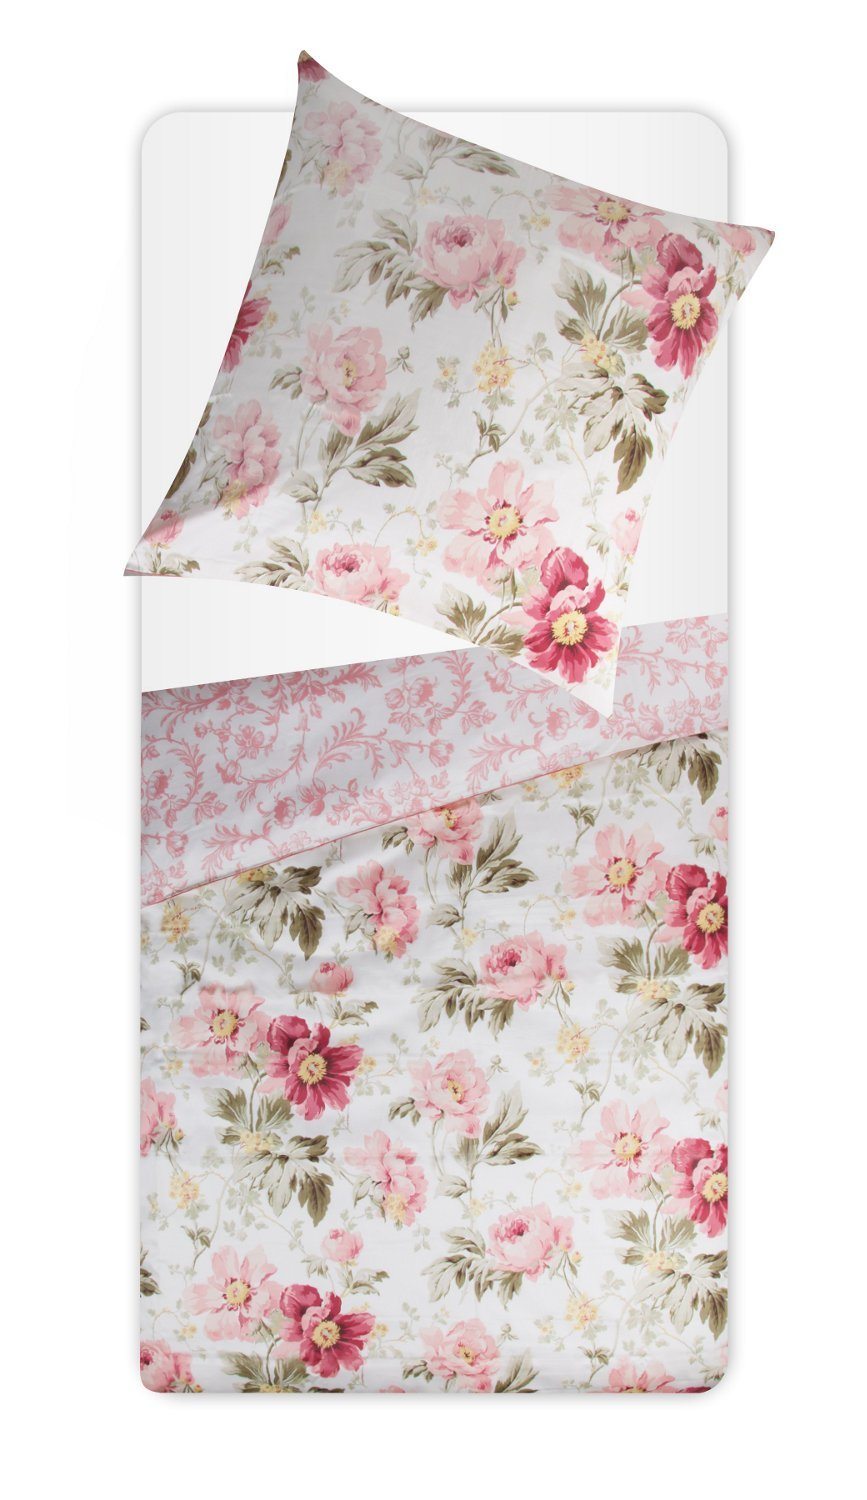 laura ashley bettw sche peony garden v1 155 x 220 cm ebay. Black Bedroom Furniture Sets. Home Design Ideas